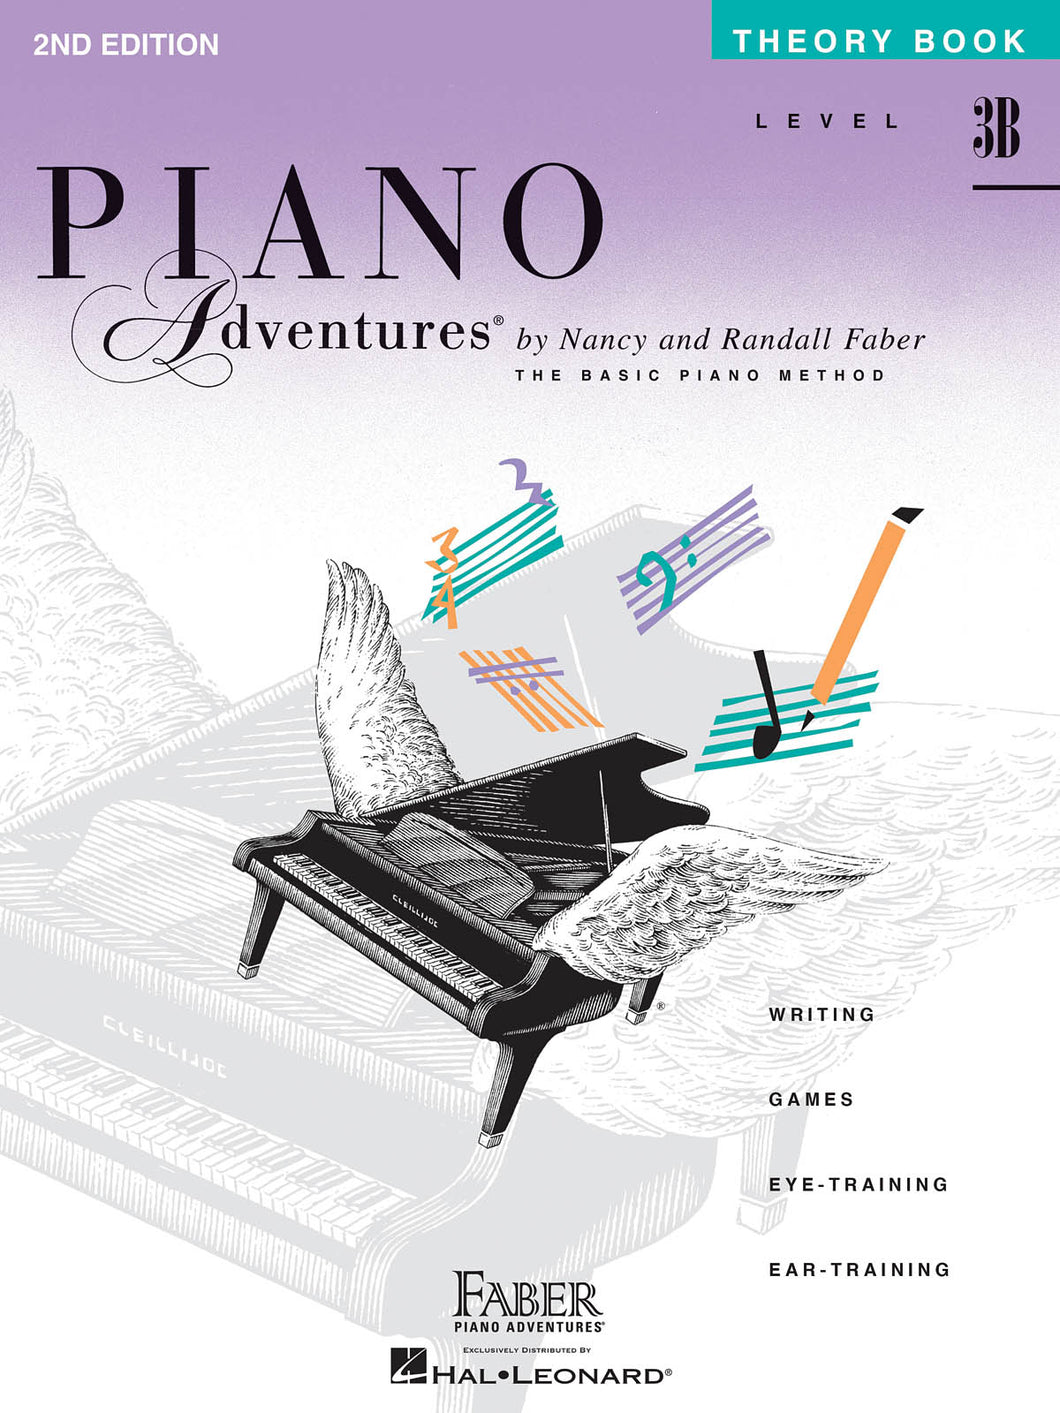 Faber Piano Adventures Theory Book 3B